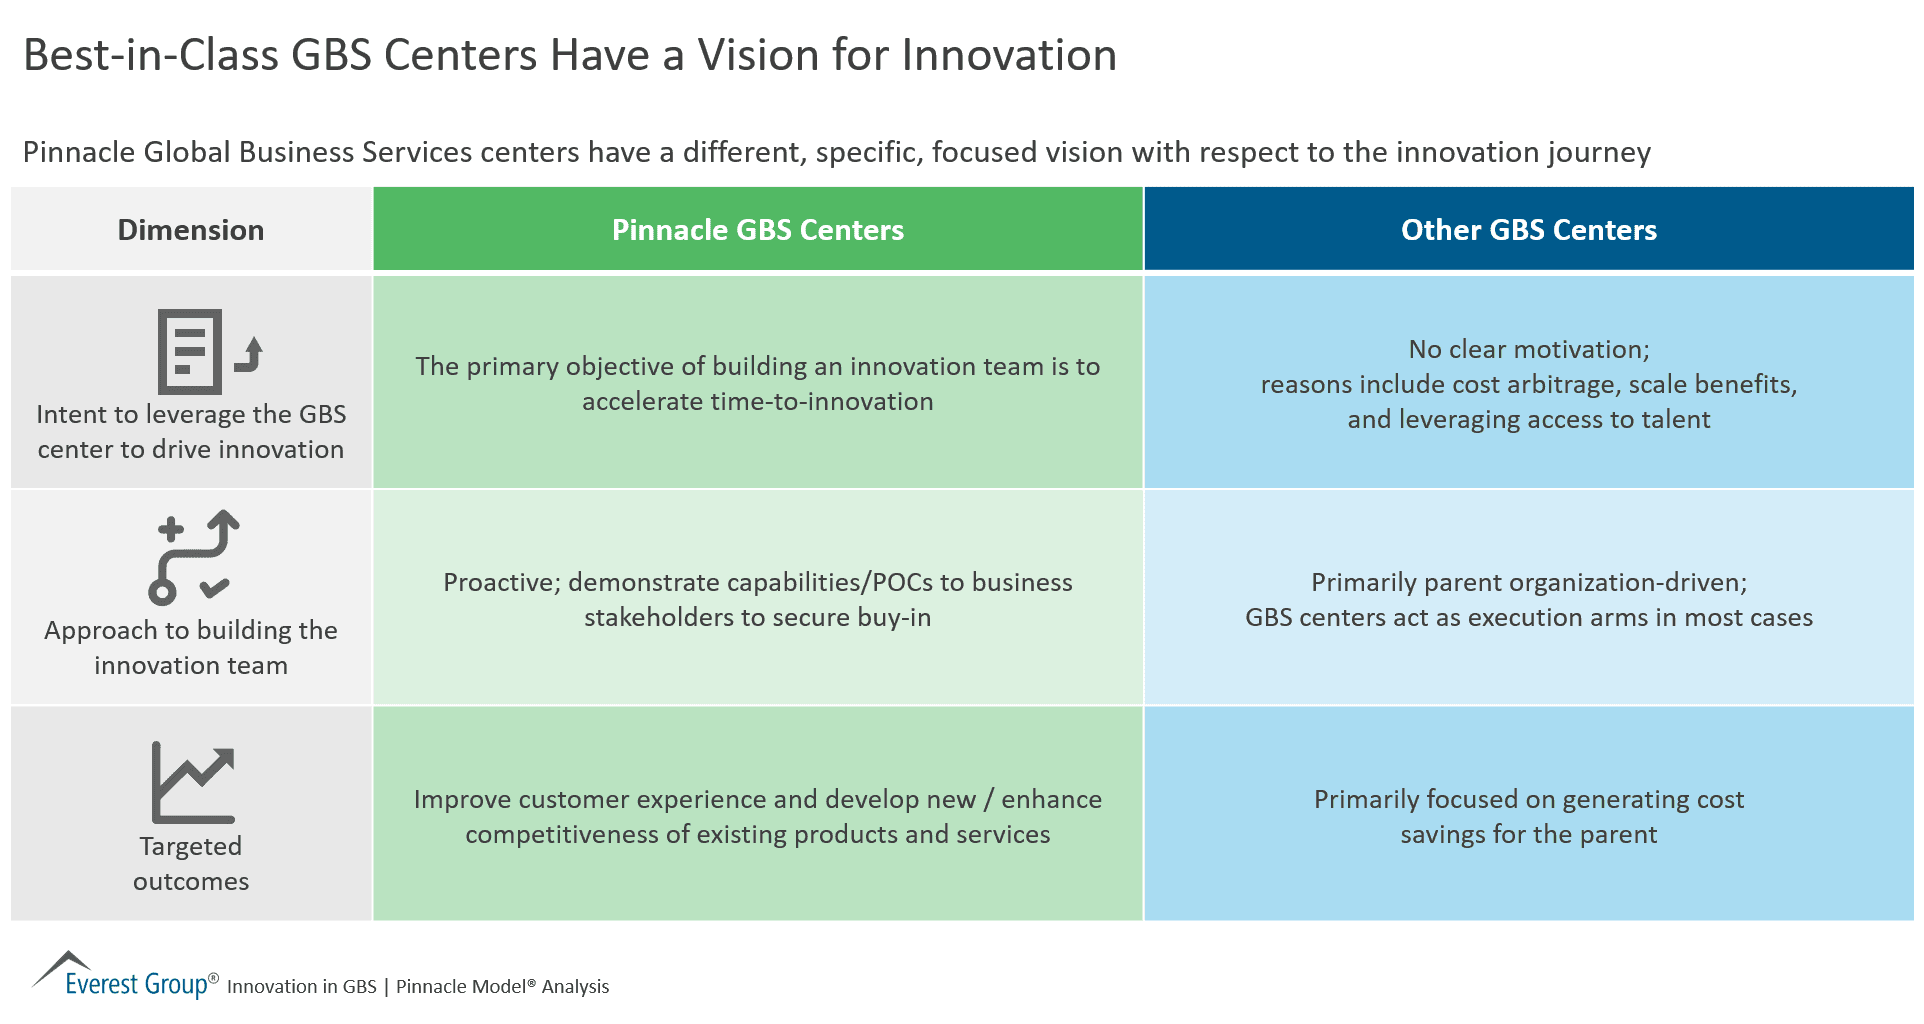 Best-in-Class GBS Centers Have a Vision for Innovation